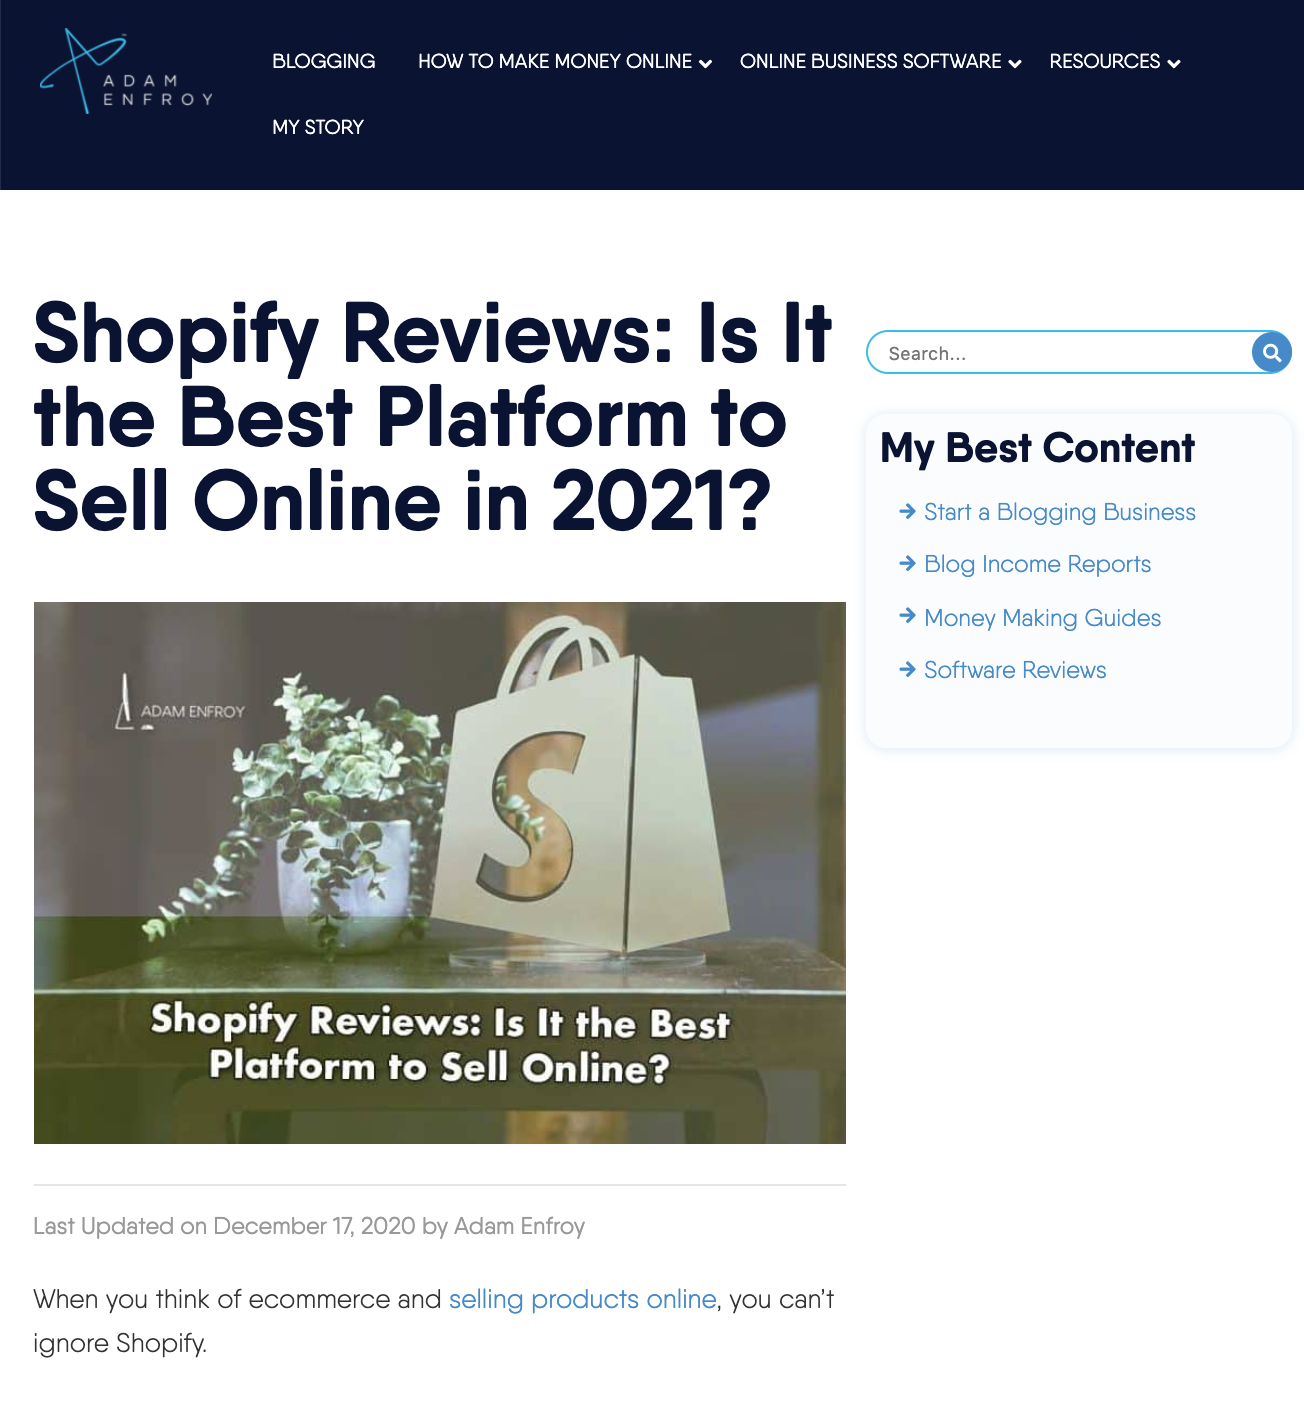 Home Business Ideas: Adam Enfroy – Shopify Review